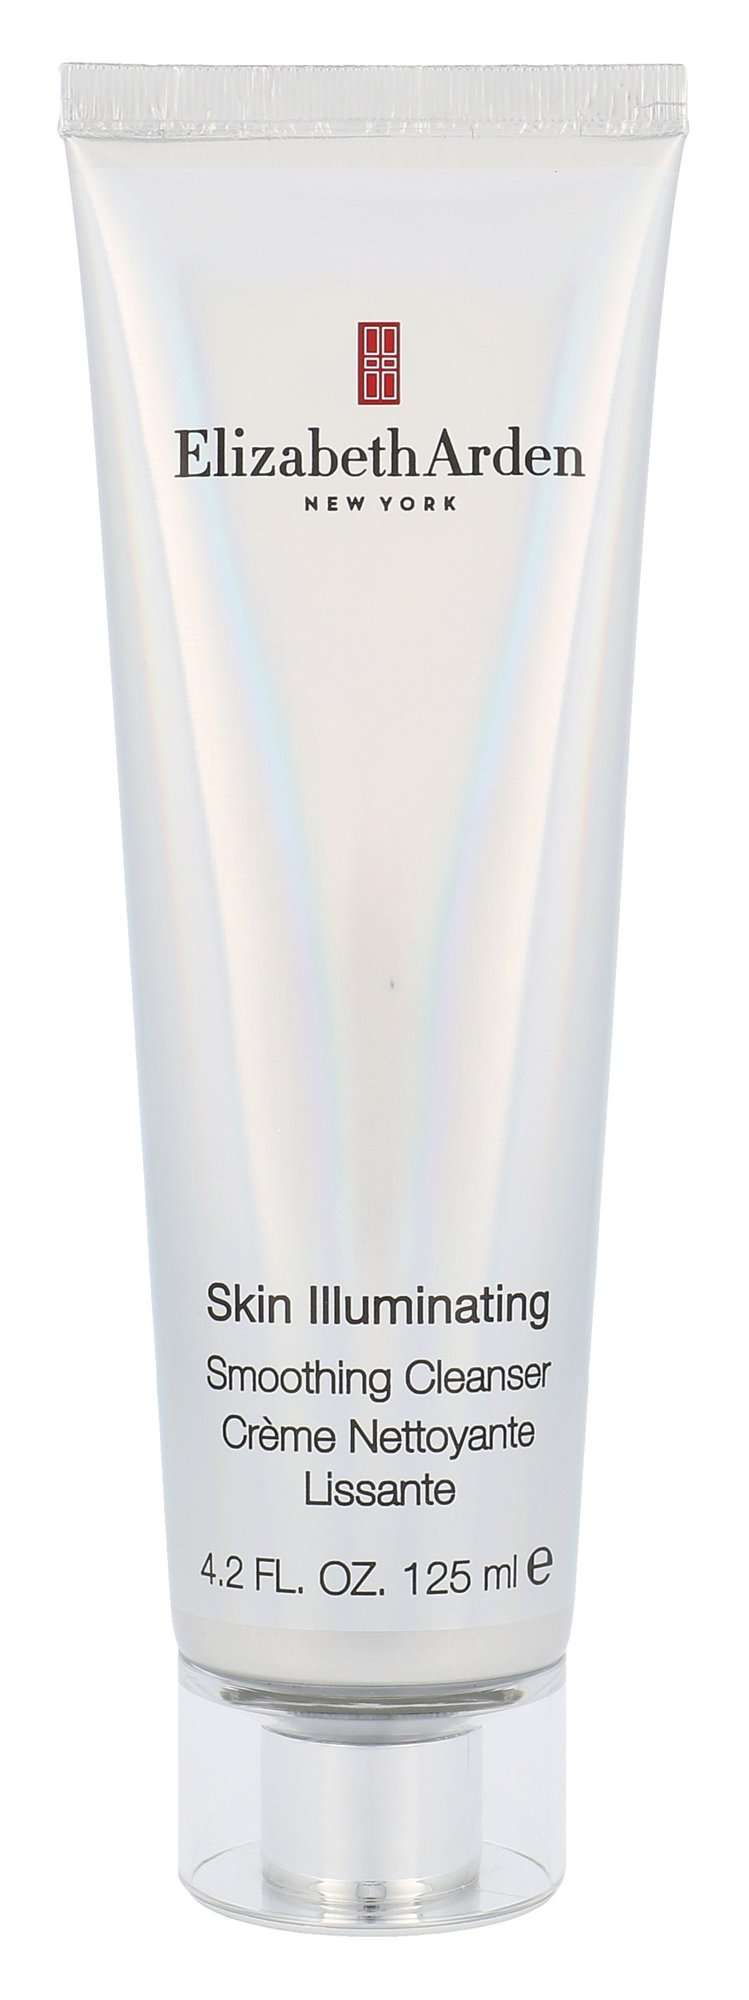 Elizabeth Arden Skin Illuminating Cosmetic 125ml